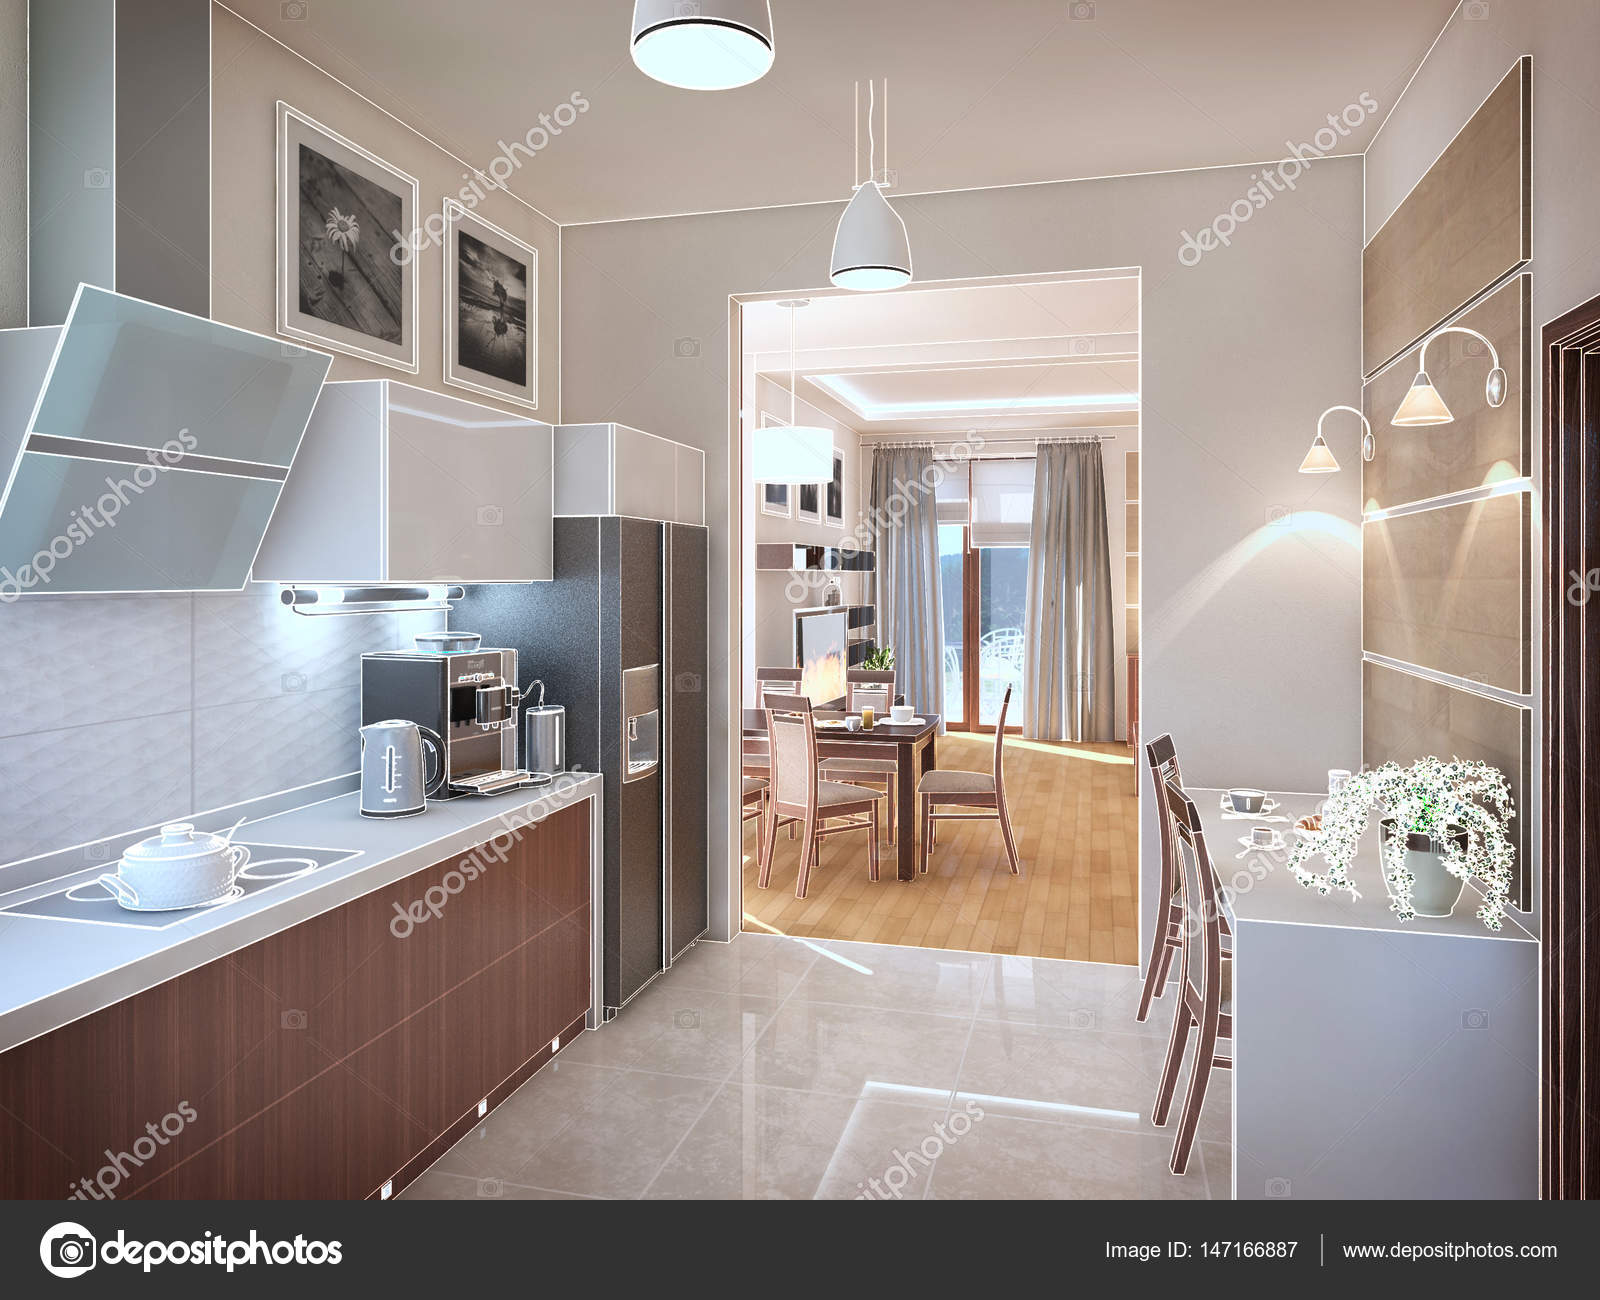 Küche Interieur. 3D-Illustration, Rendern — Stockfoto © Wassiliy ...